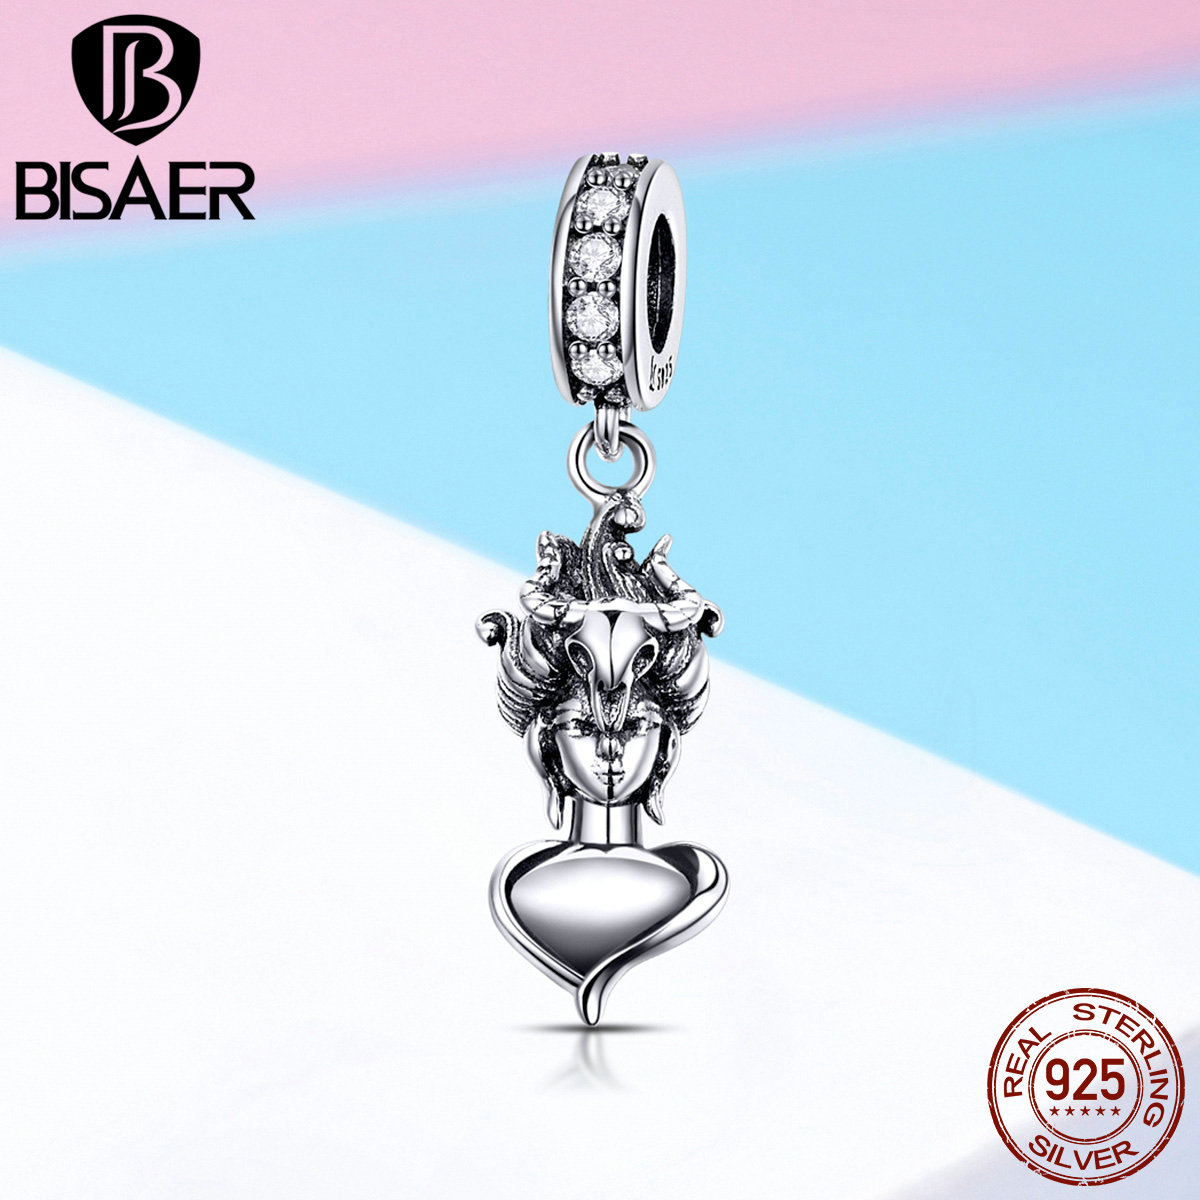 e11a701afef3a7 Detail Feedback Questions about BISAER 925 Sterling Silver Ancient Greek  Goddess Good Luck Pendant Charm fit for Women Charms Bracelet and Necklace  GXC1050 ...